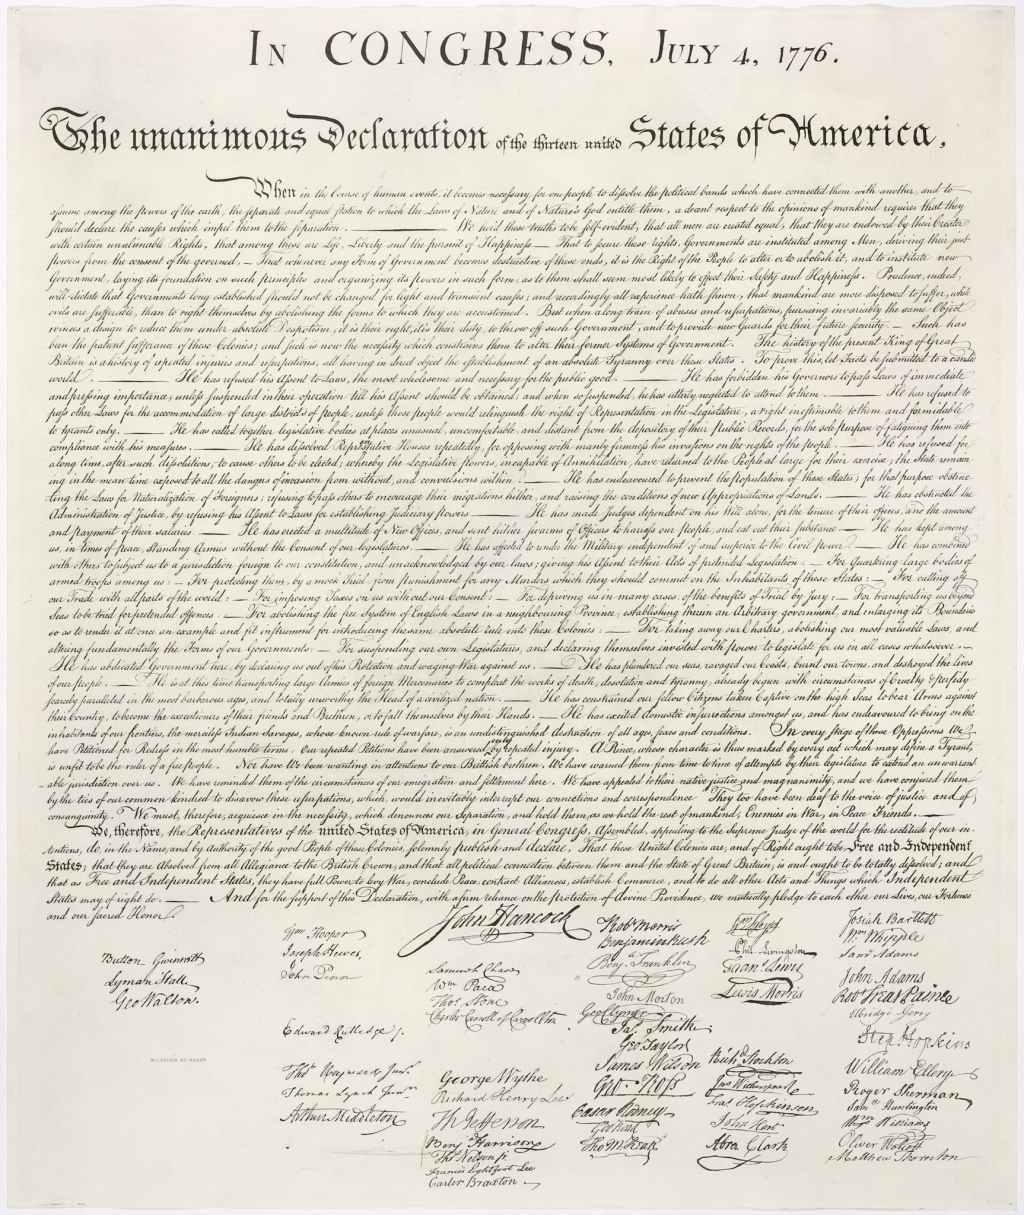 Print #3 of the Declaration of Independence, DEMOCRACY, Craft in America